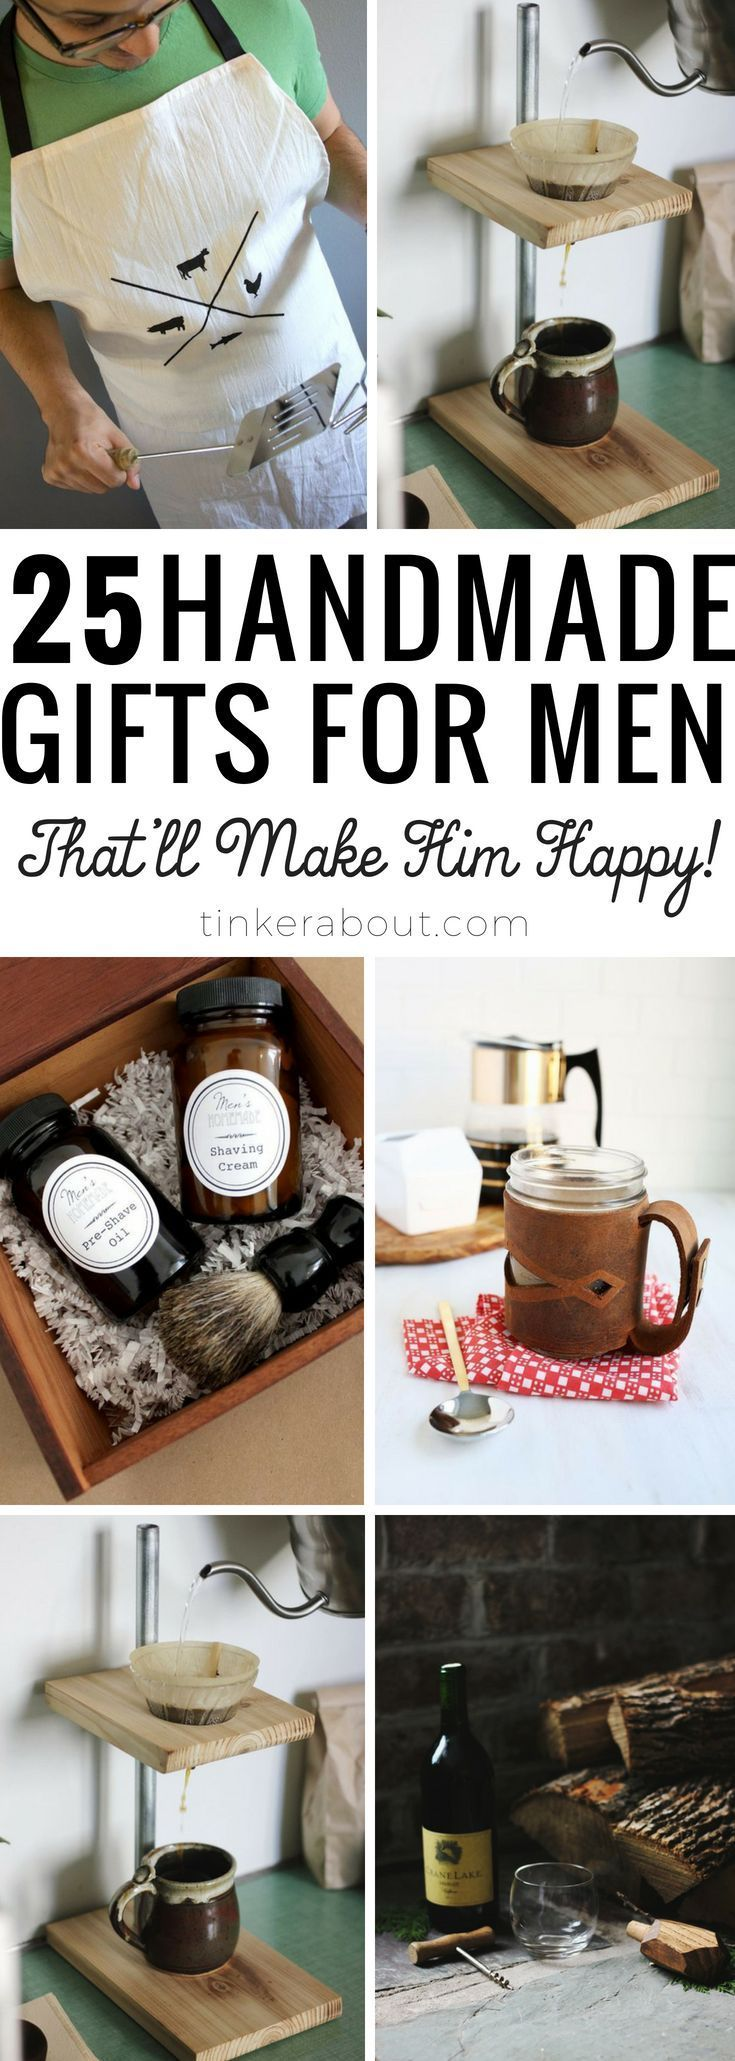 photo gifts for him diy